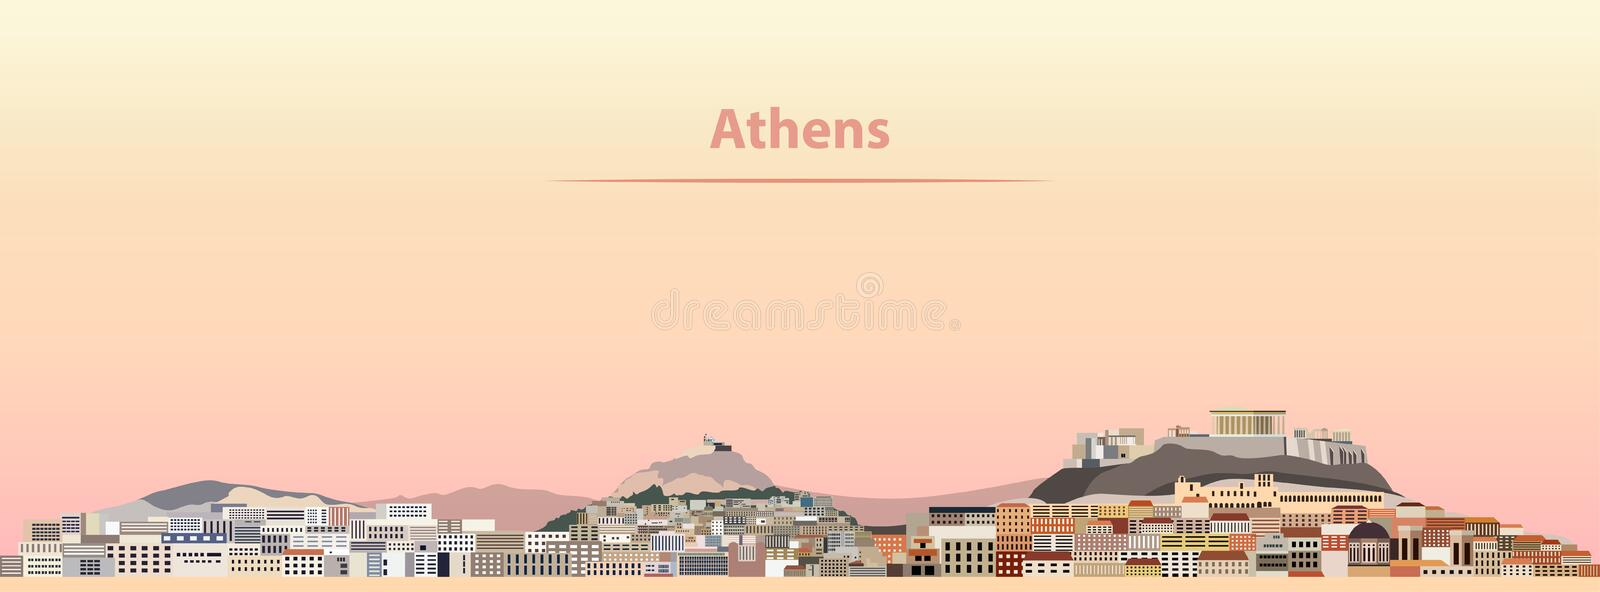 Vector illustration of Athens skyline at sunrise royalty free illustration